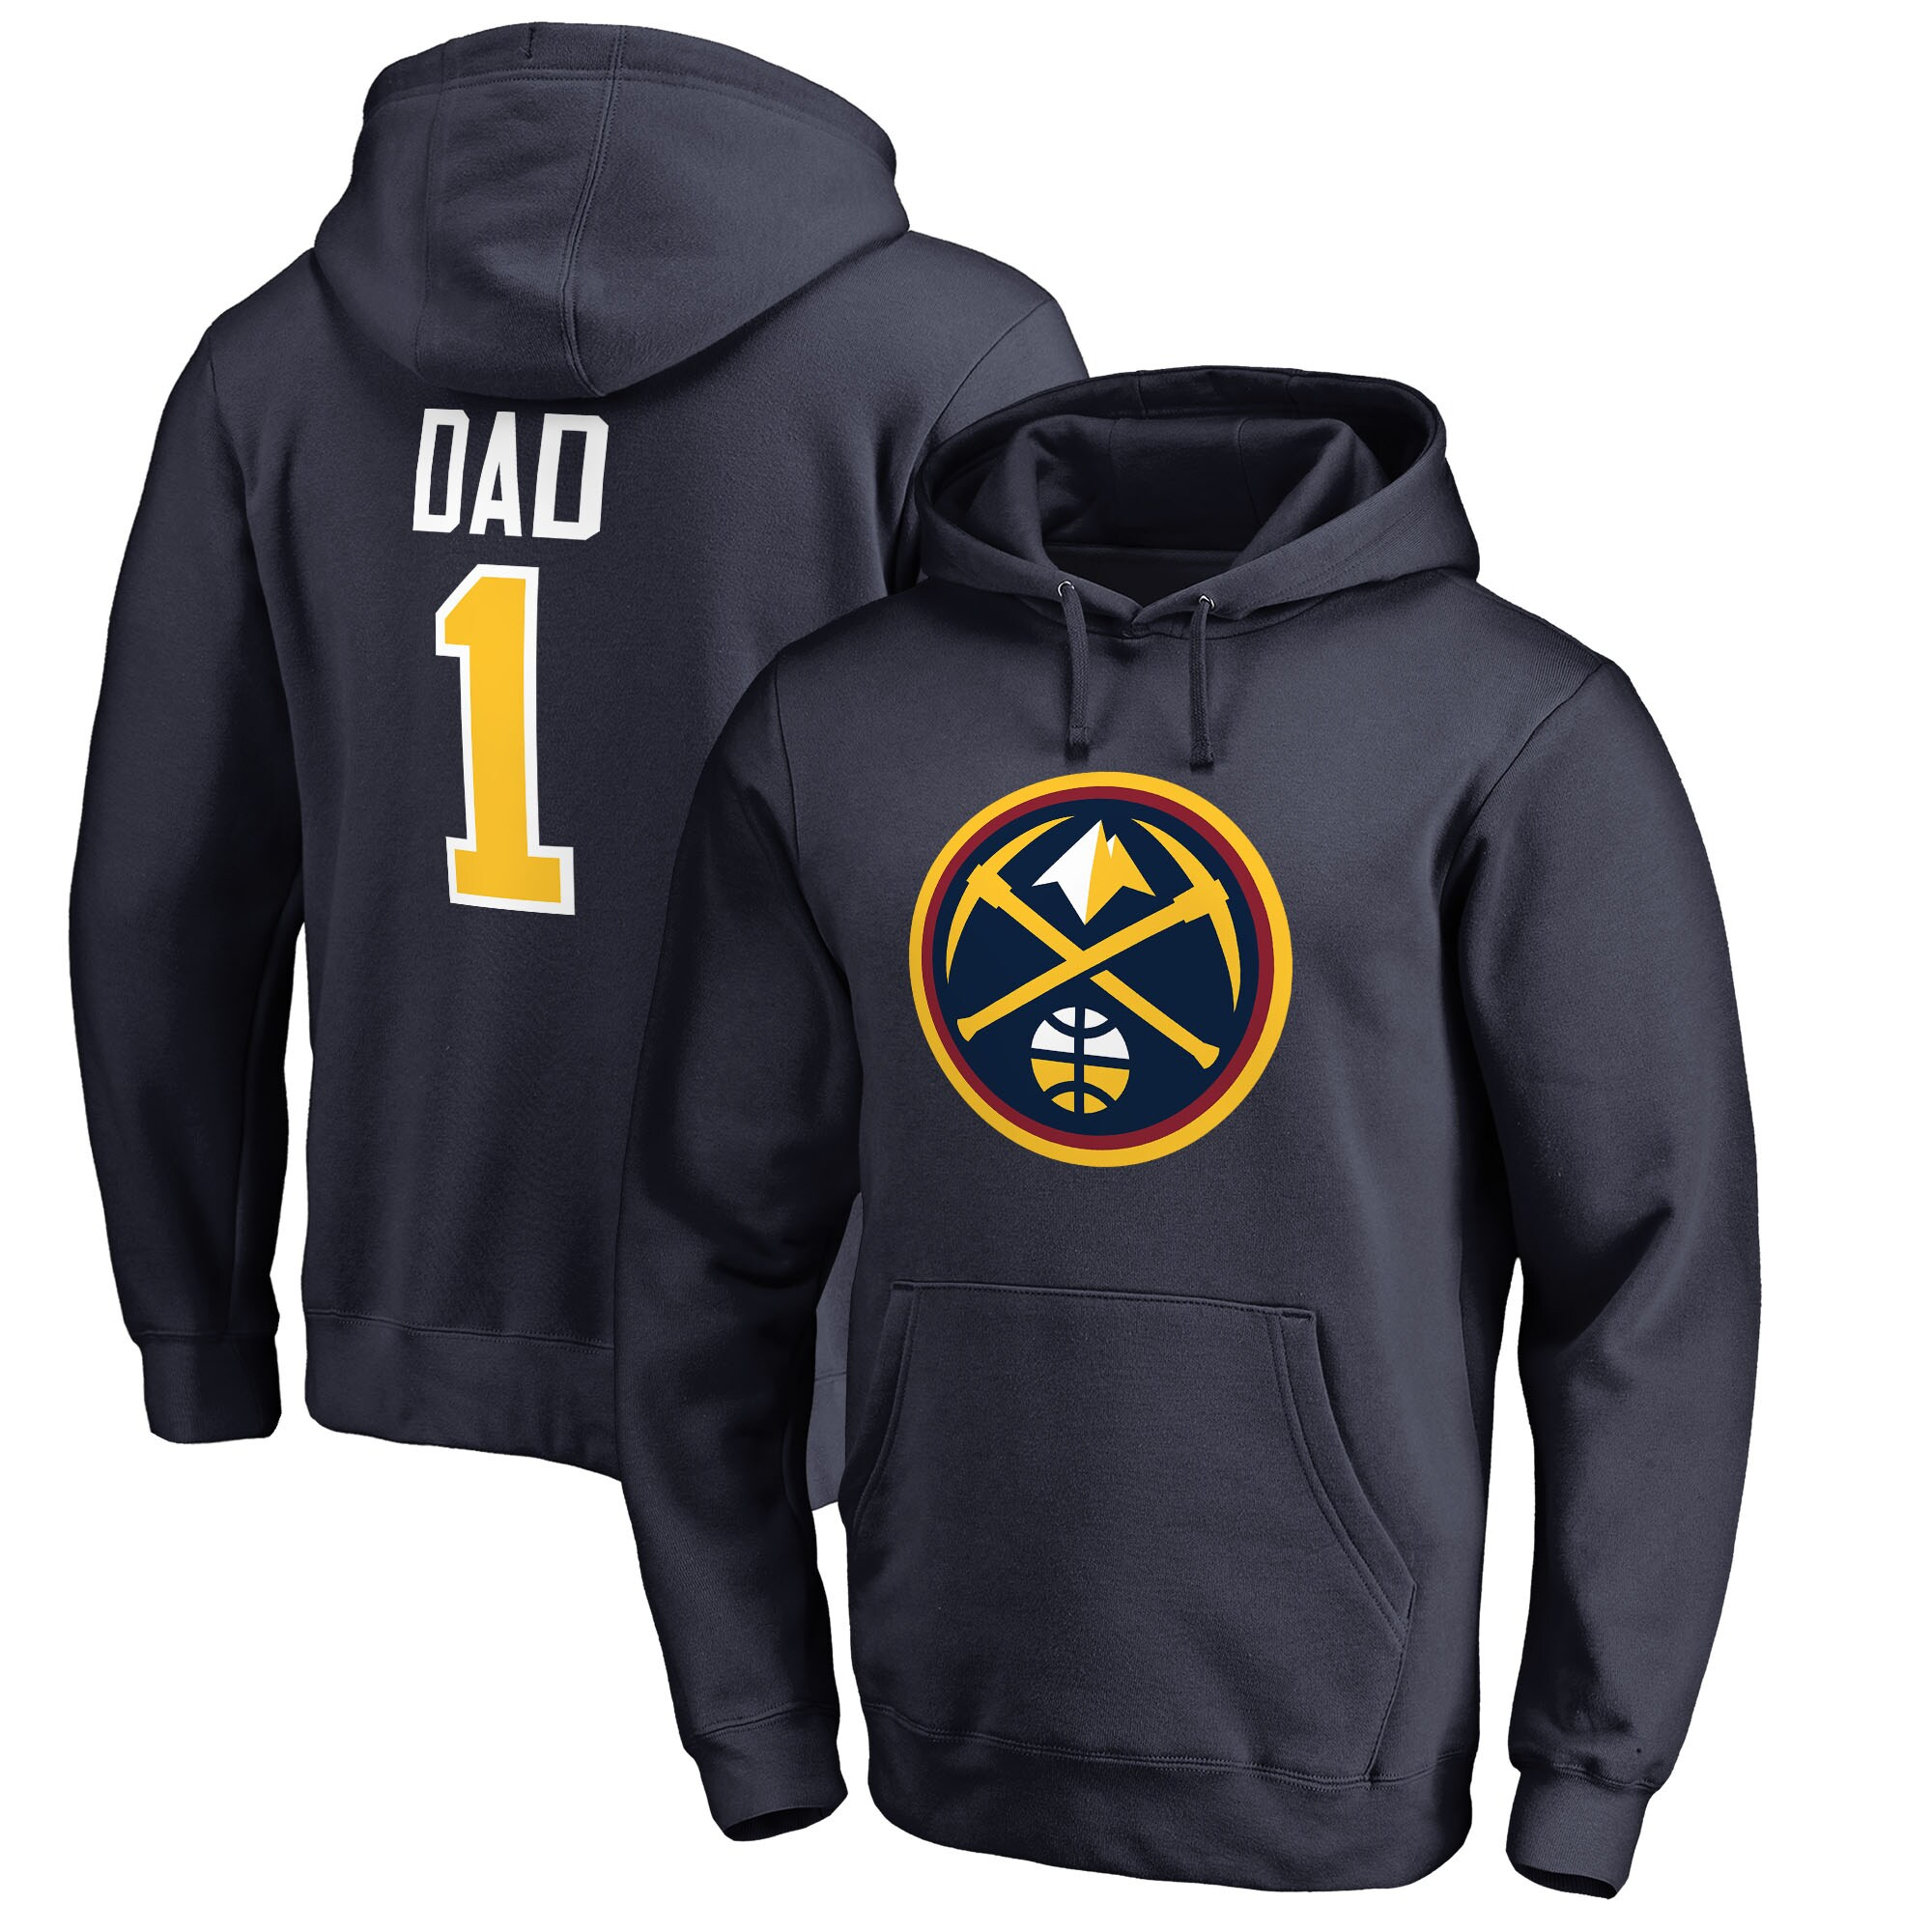 Denver Nuggets Fanatics Branded Big & Tall #1 Dad Pullover Hoodie - Navy